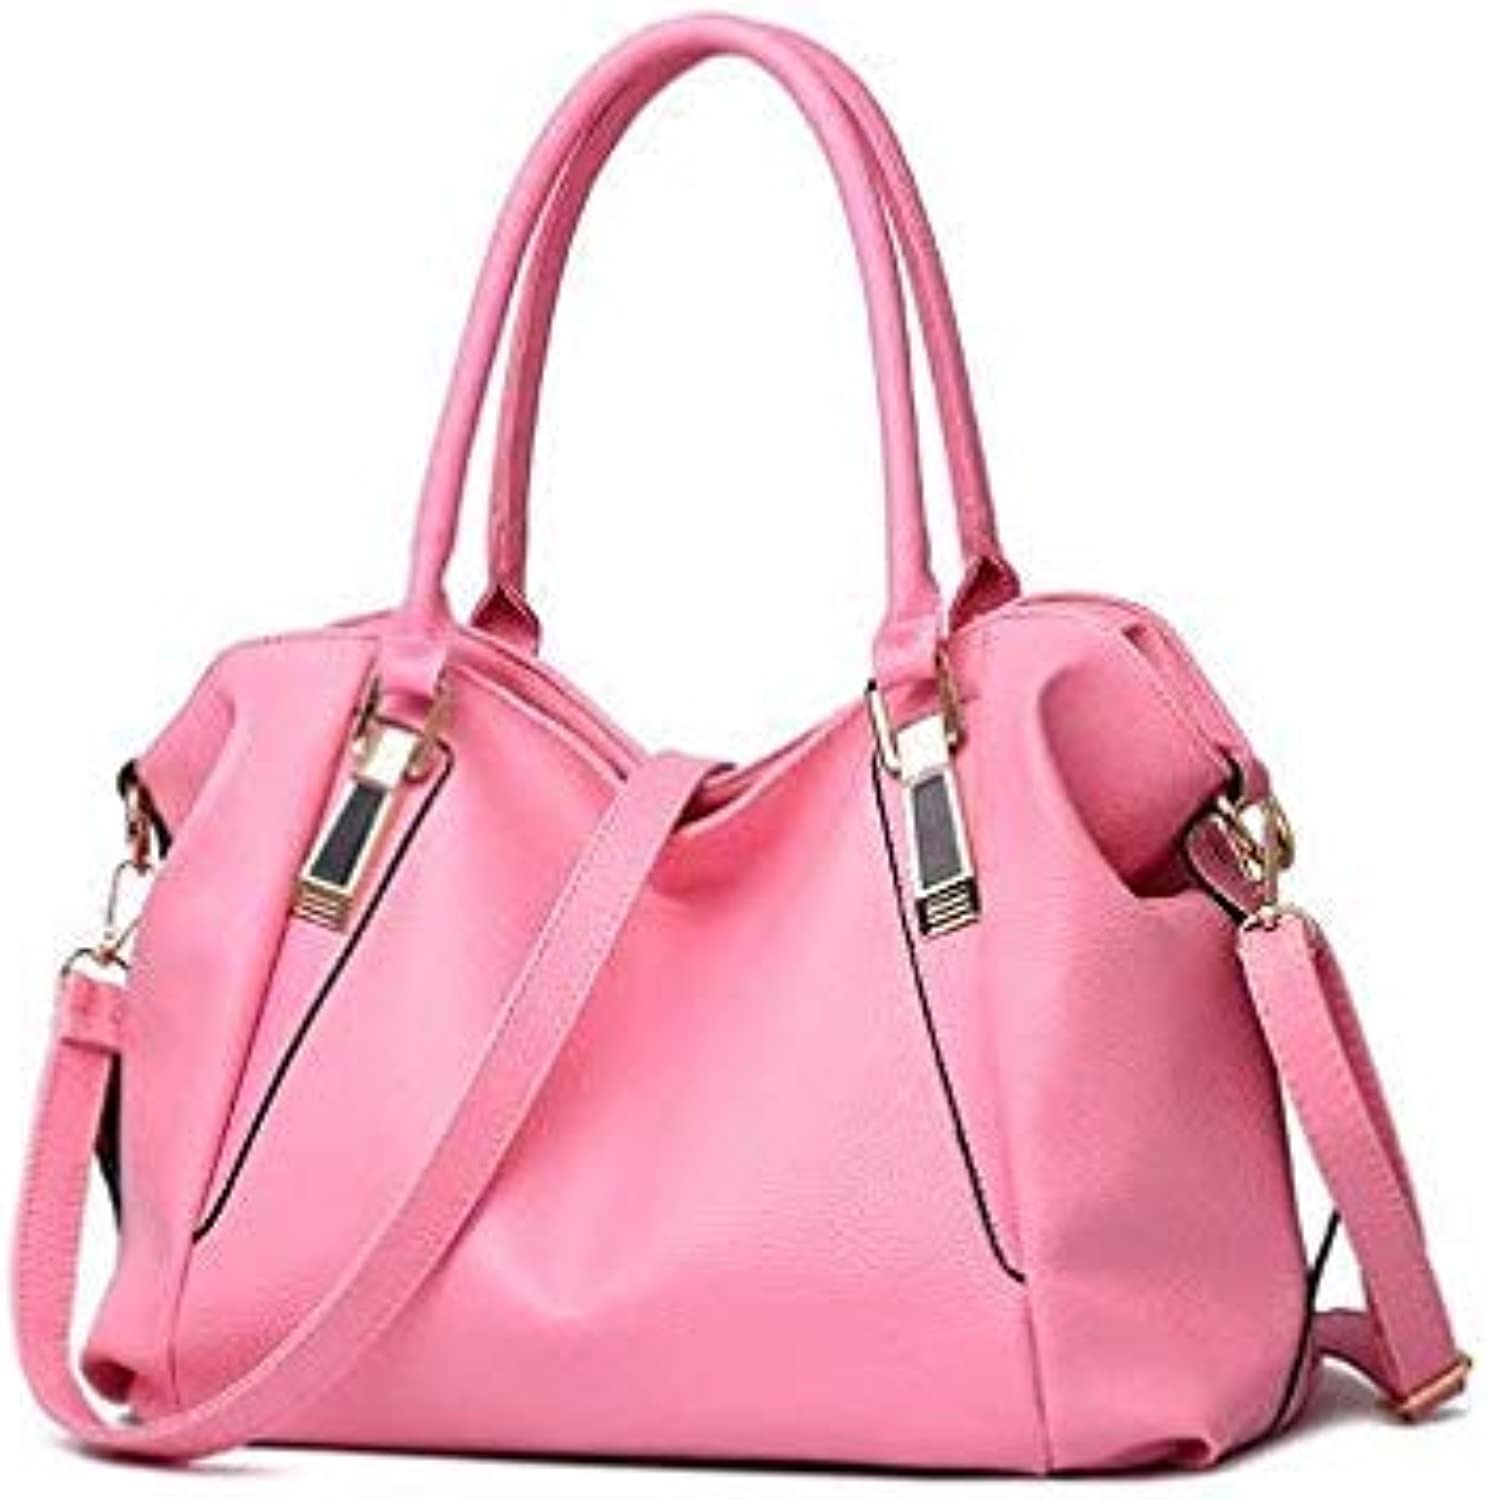 Bloomerang I AM LX 2016 Women Fashion Handbag Shoulder Bag Women Messenger Bags Ladies pu Leather Handbags Totes Handbag bolsas color Pink Women Handbag